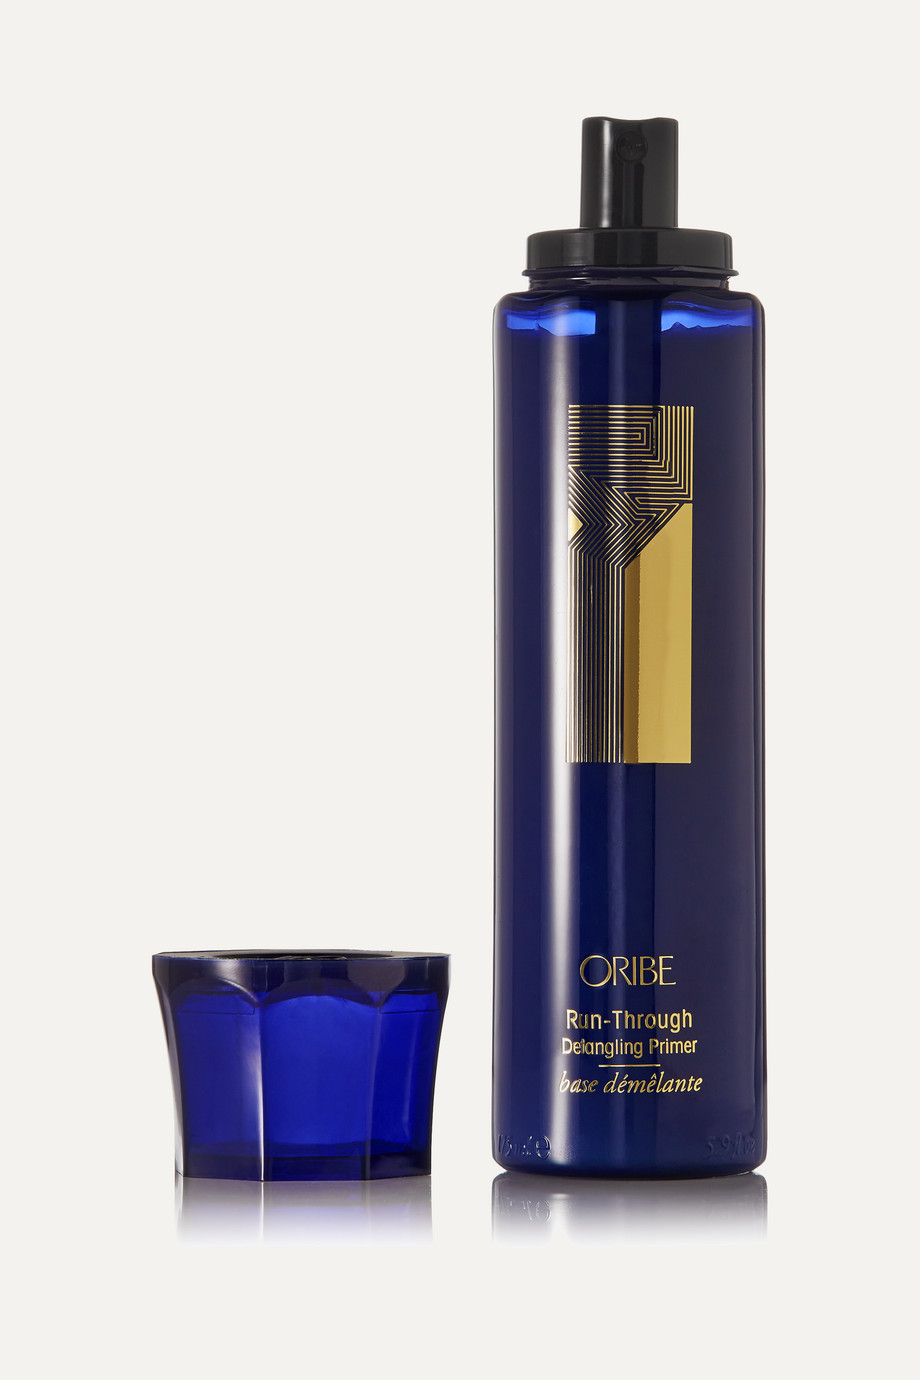 ORIBE Run-Through Detangling Primer, 175ml